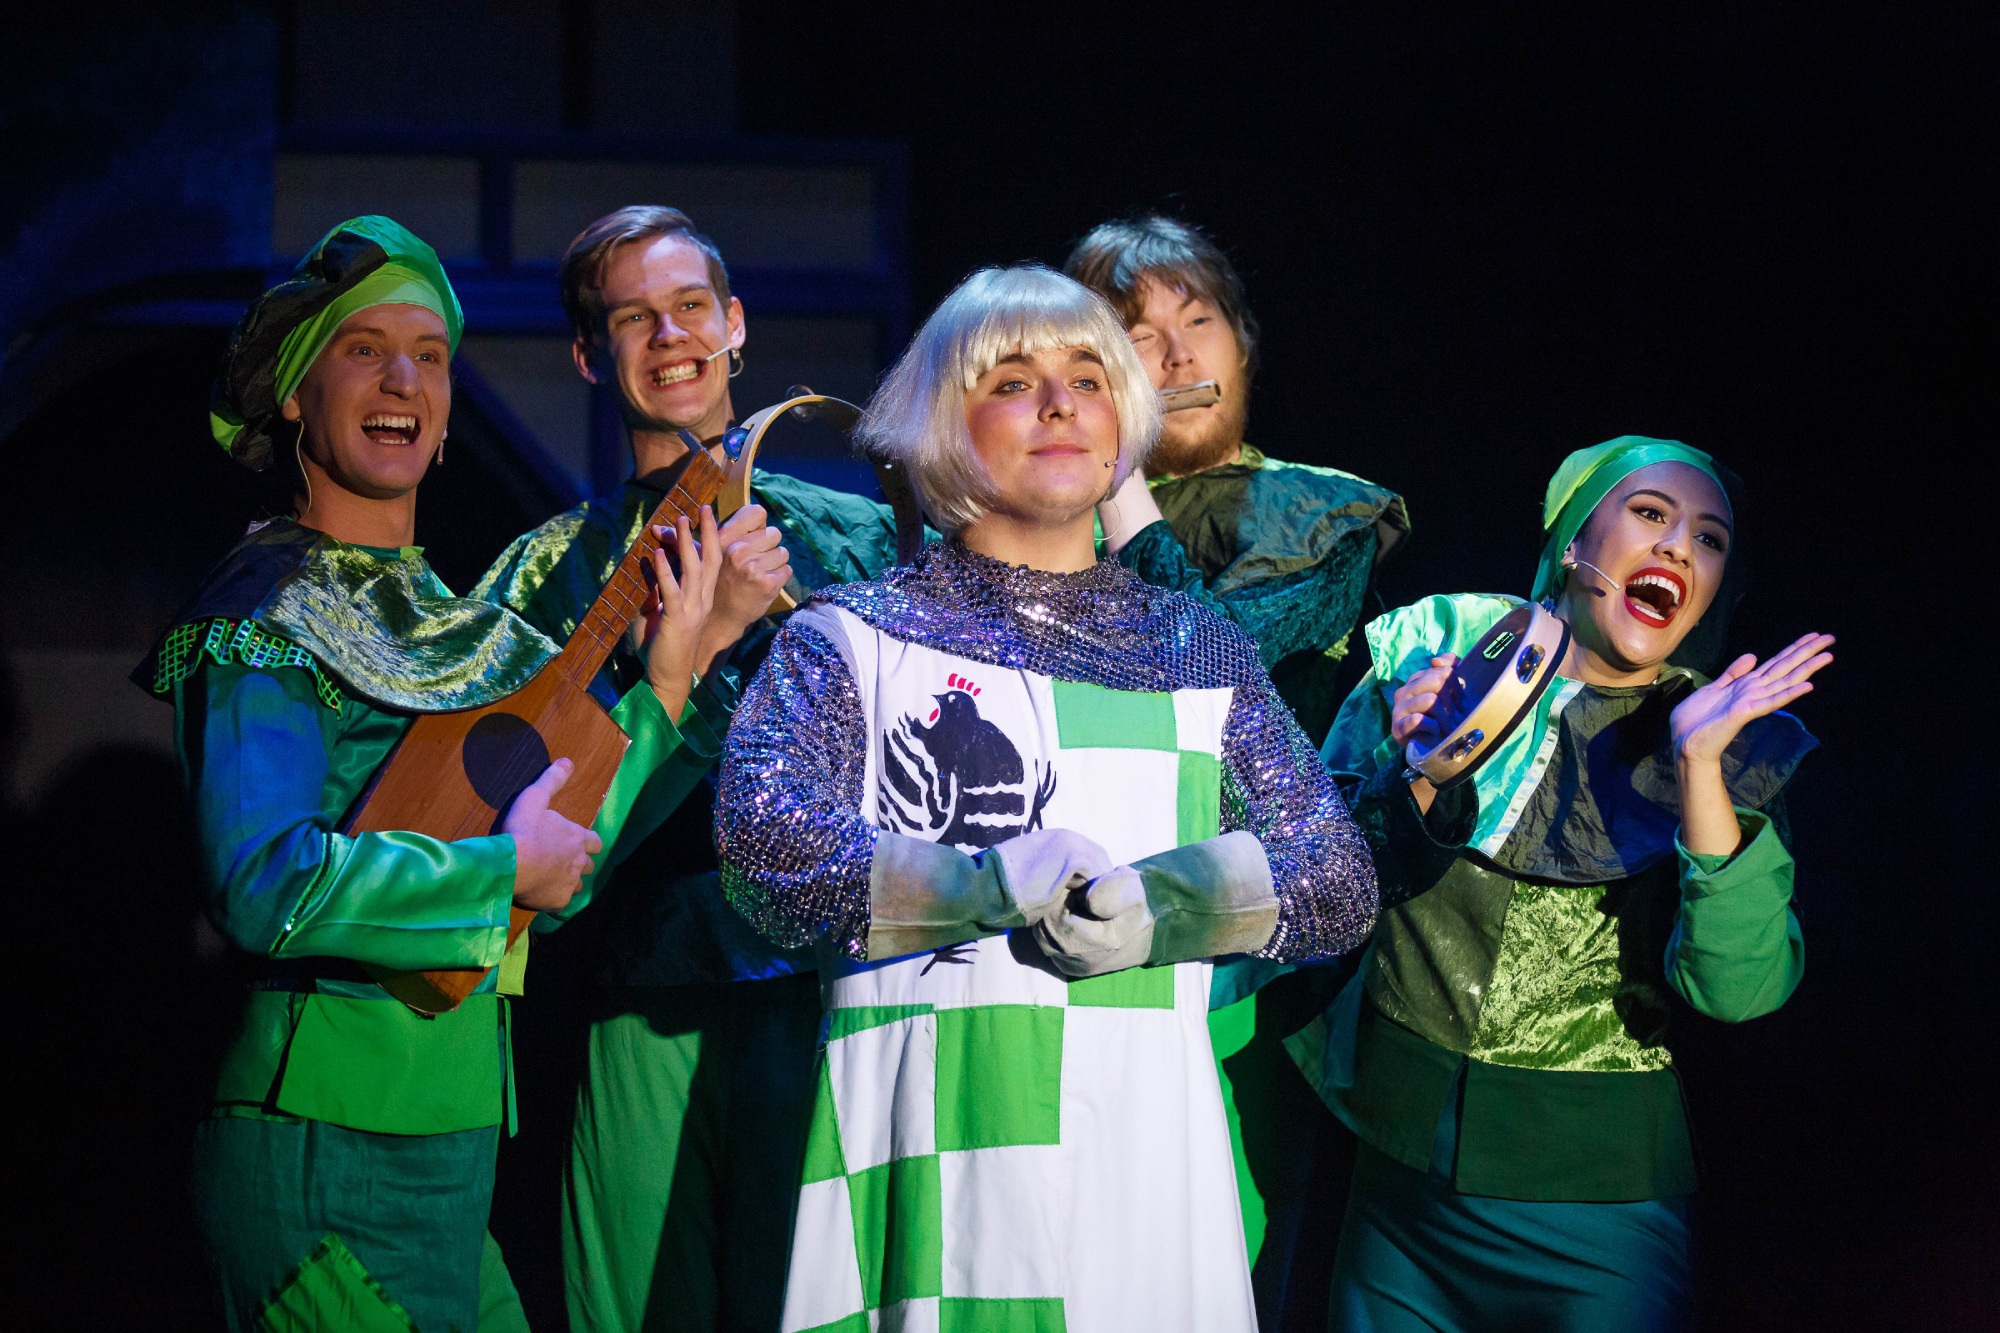 Spamalot in Kwinana: Spam spam spam spam and spam